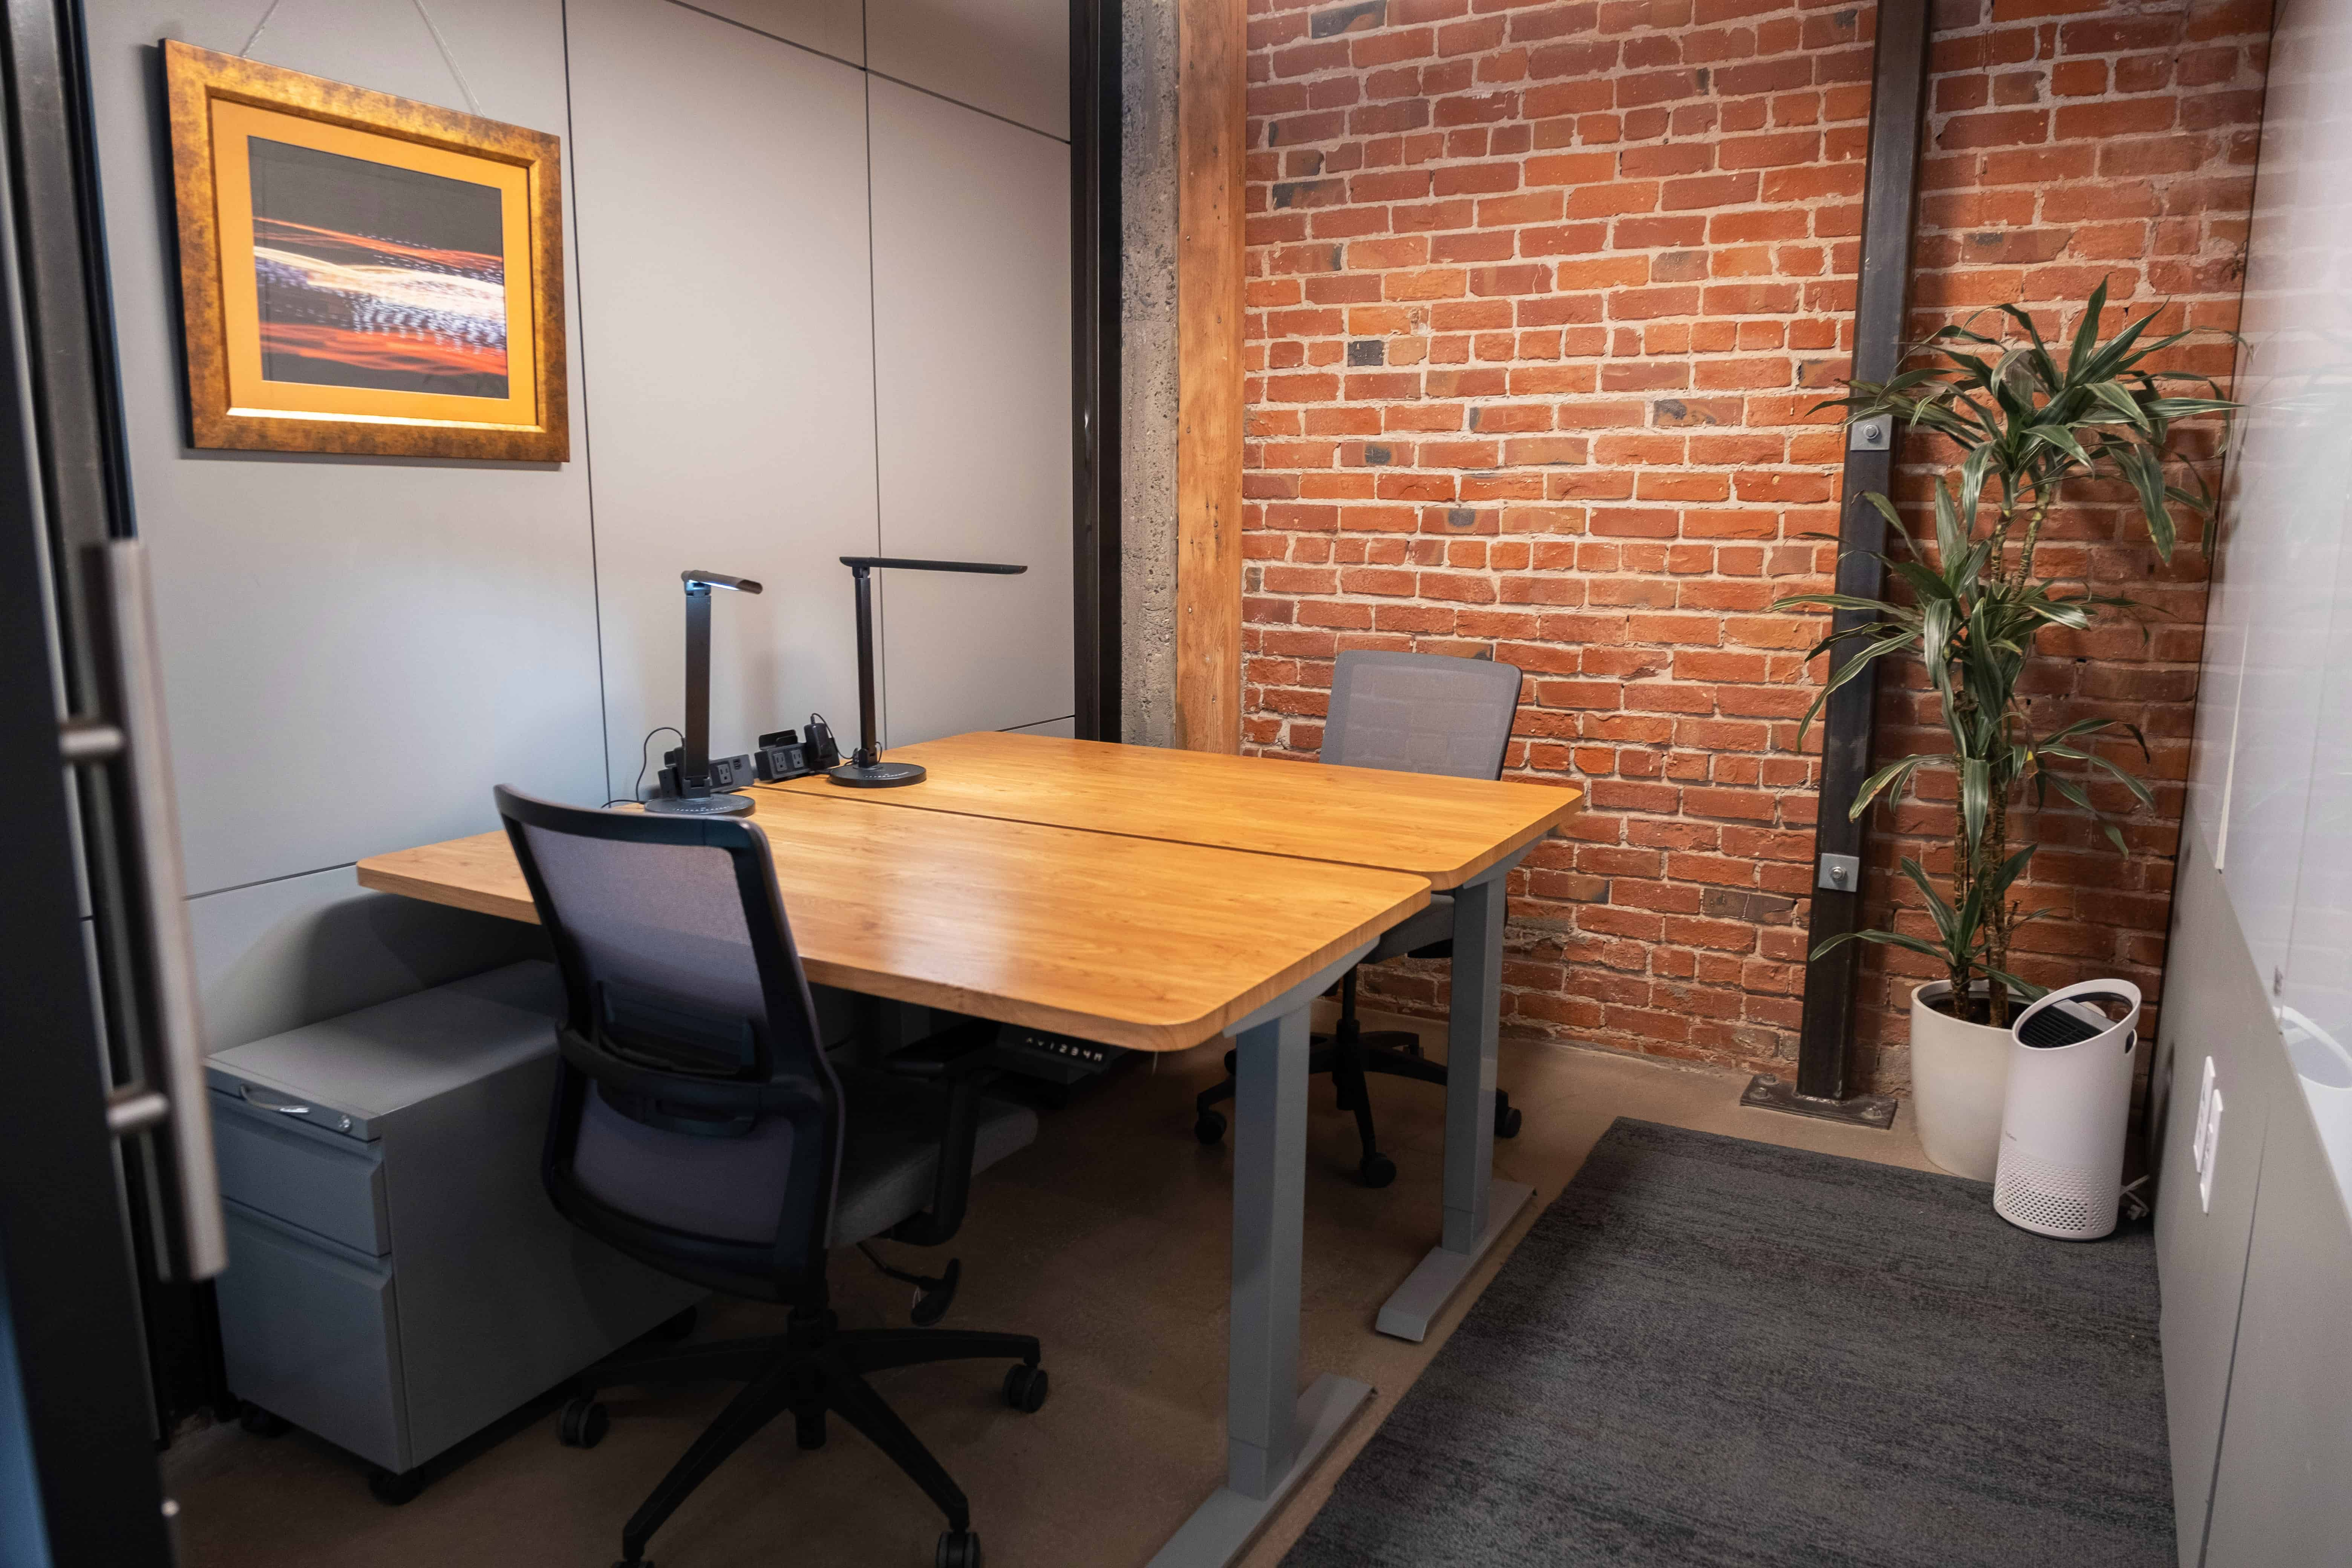 Flexible workspace plans and pricing: Private workspaces